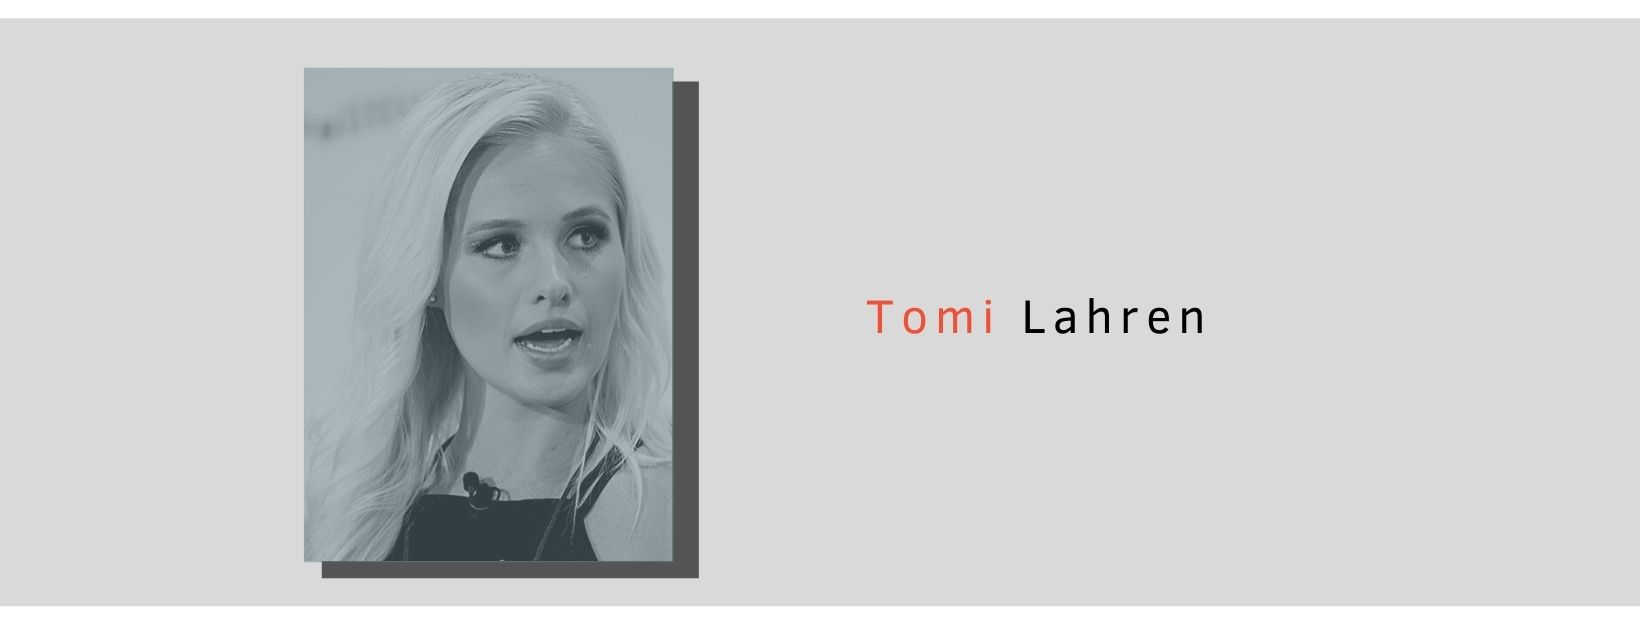 Graphic shows conservative American talk show host and political commentator, Tomi Lahren, caught mid sentence and looking offscreen to the right.